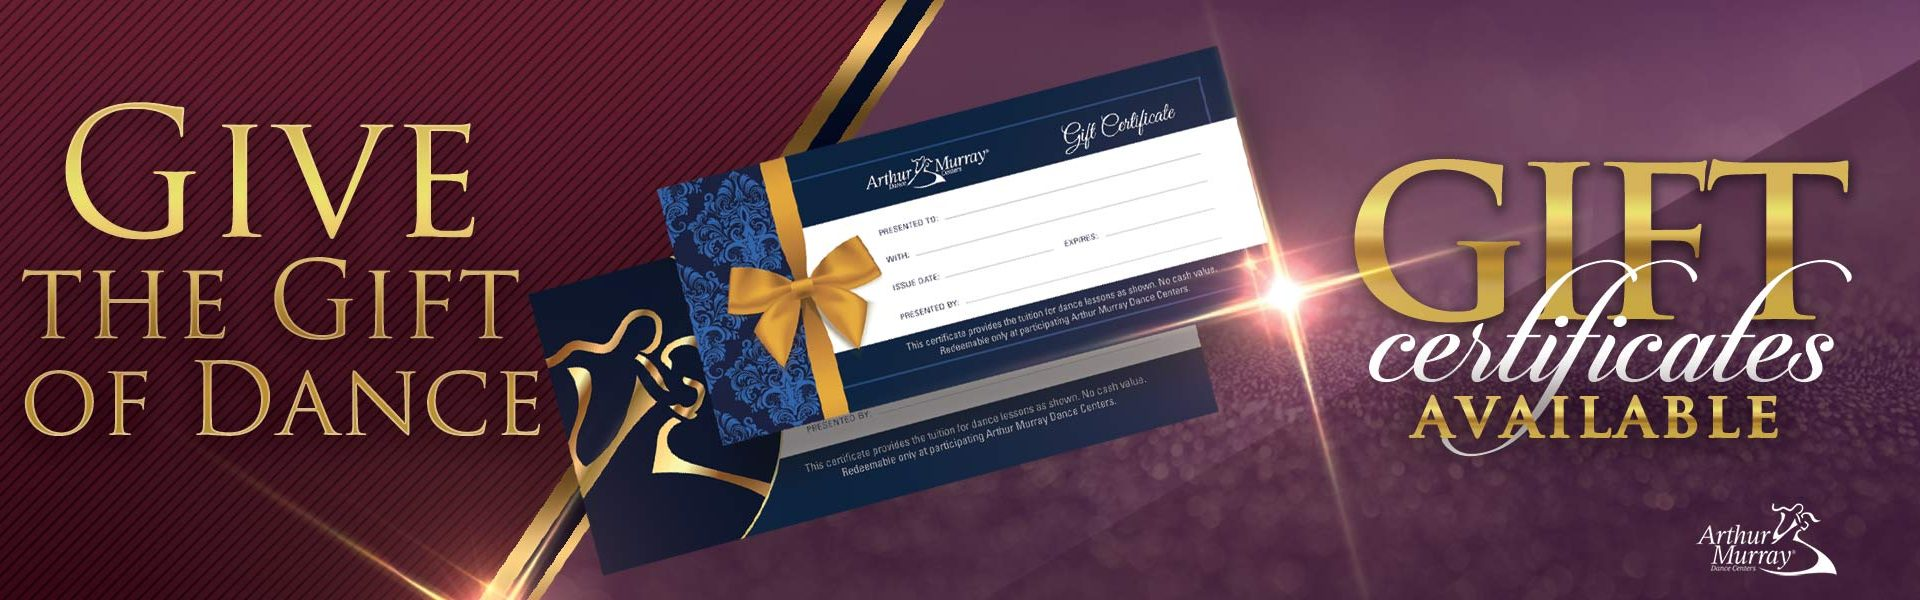 Arthur Murray Baltimore Gift Certificates